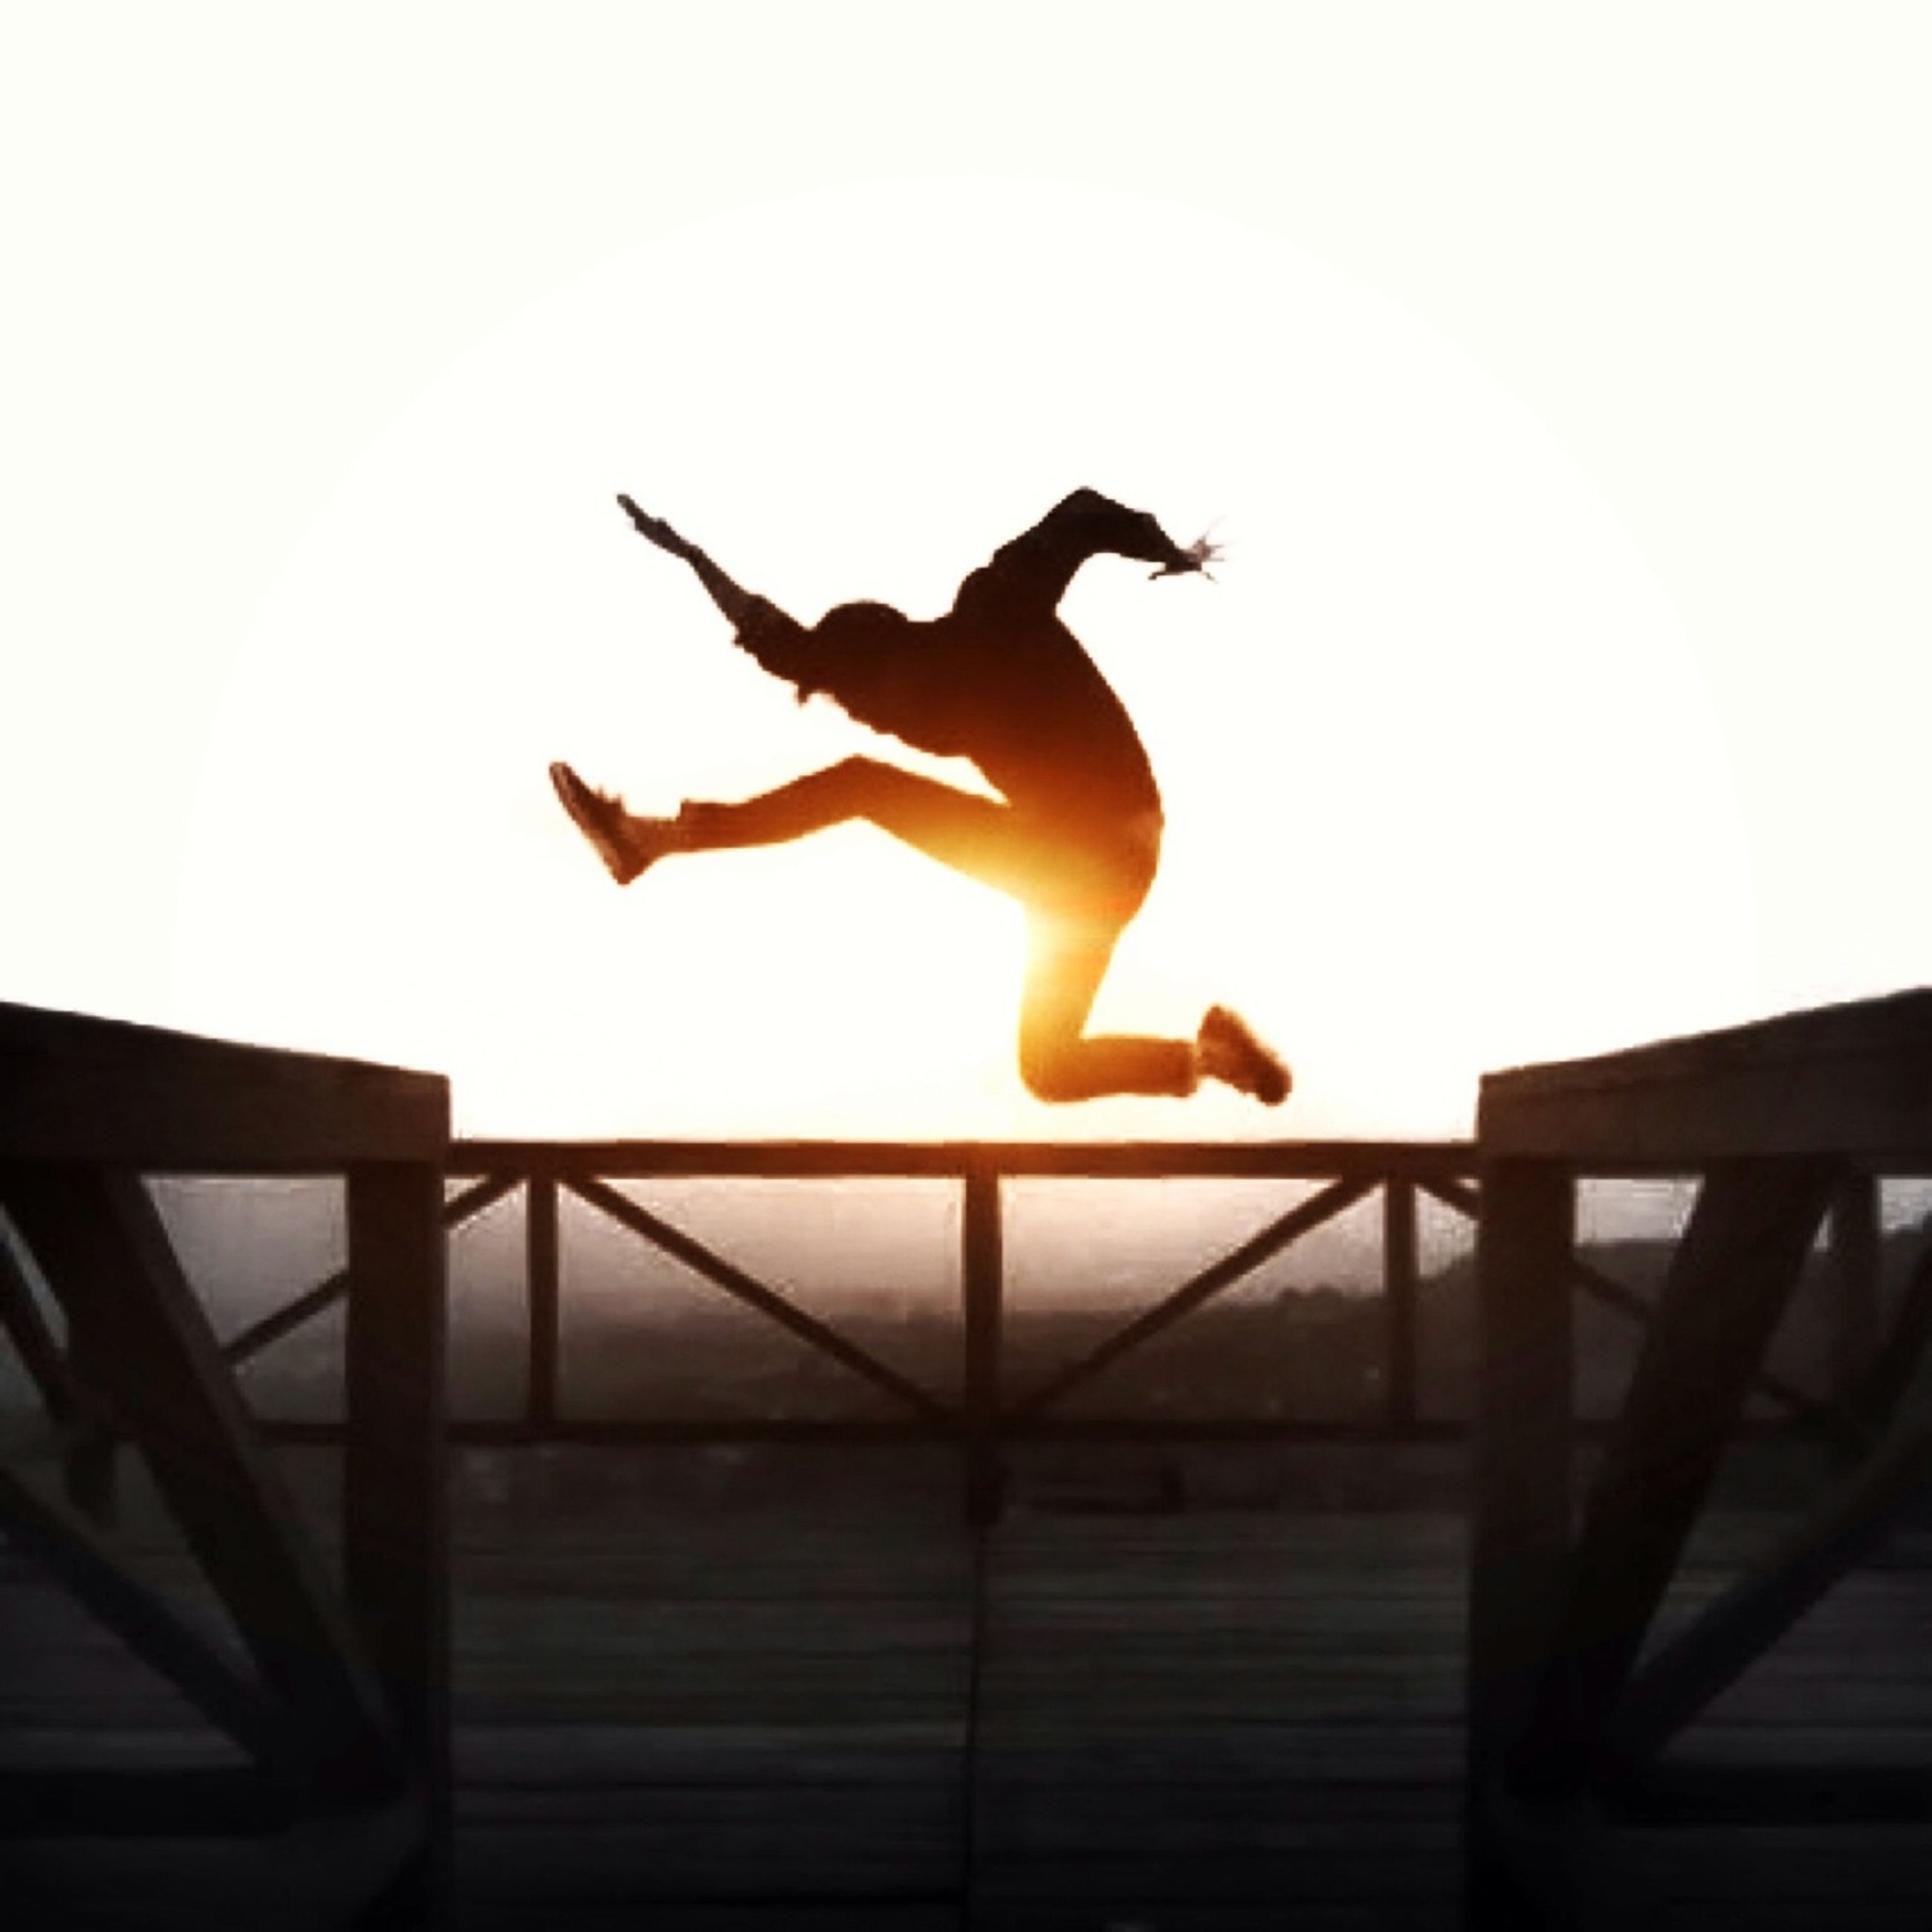 mid-air, jumping, full length, low angle view, lifestyles, leisure activity, silhouette, men, sunset, flying, clear sky, vitality, fun, sky, enjoyment, motion, freedom, arms outstretched